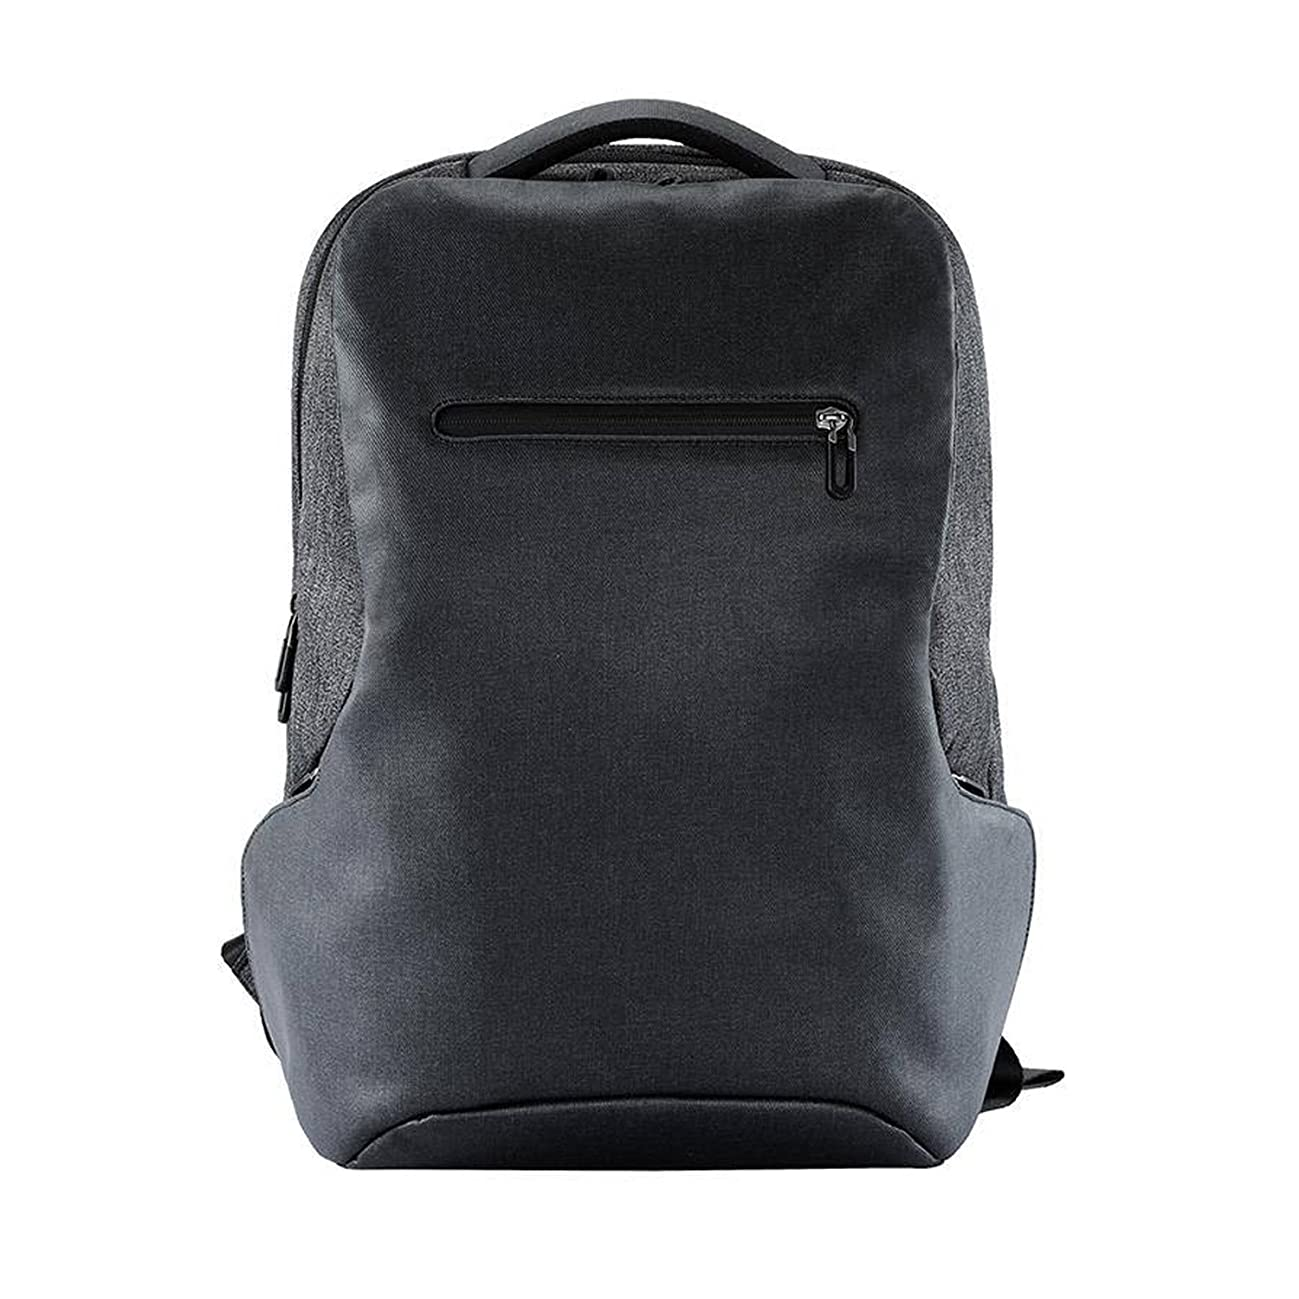 Xiaomi Travel Business Backpack Water Resistant Computer Backpacks fits 15.6 Inch Laptop Notebook or Storage Drone for Women Men (Black)